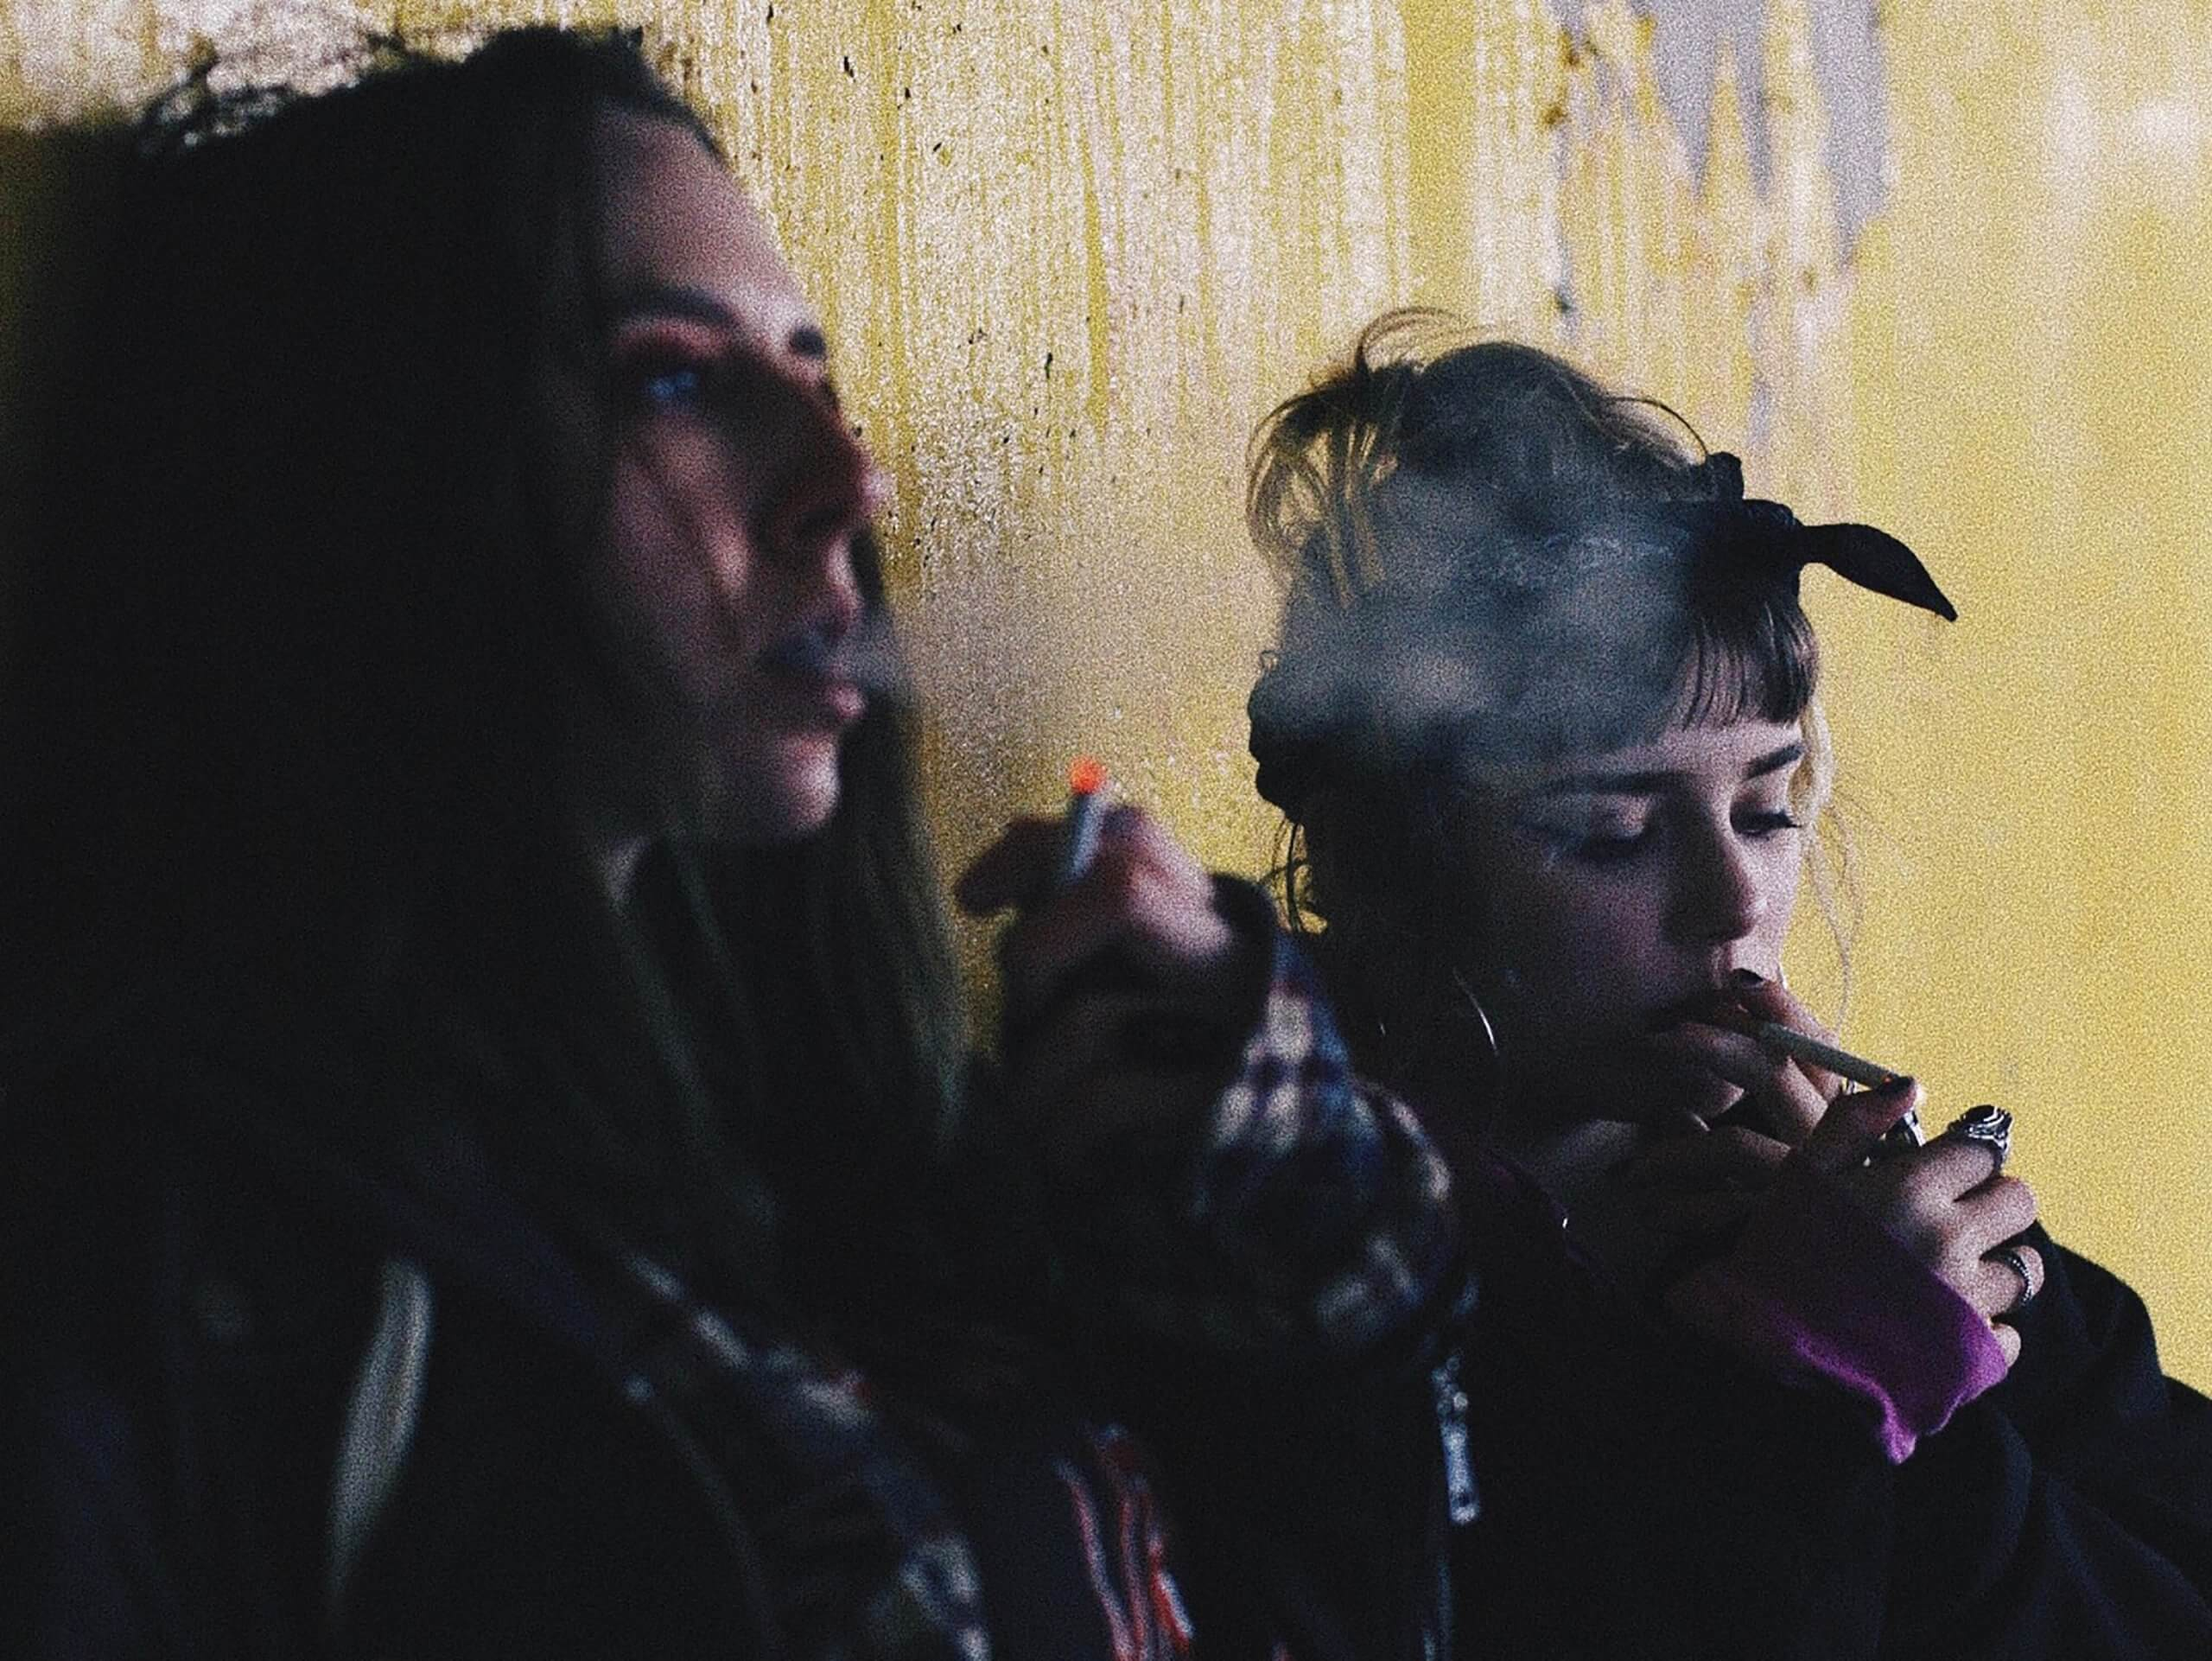 Two women doing drugs in an alley